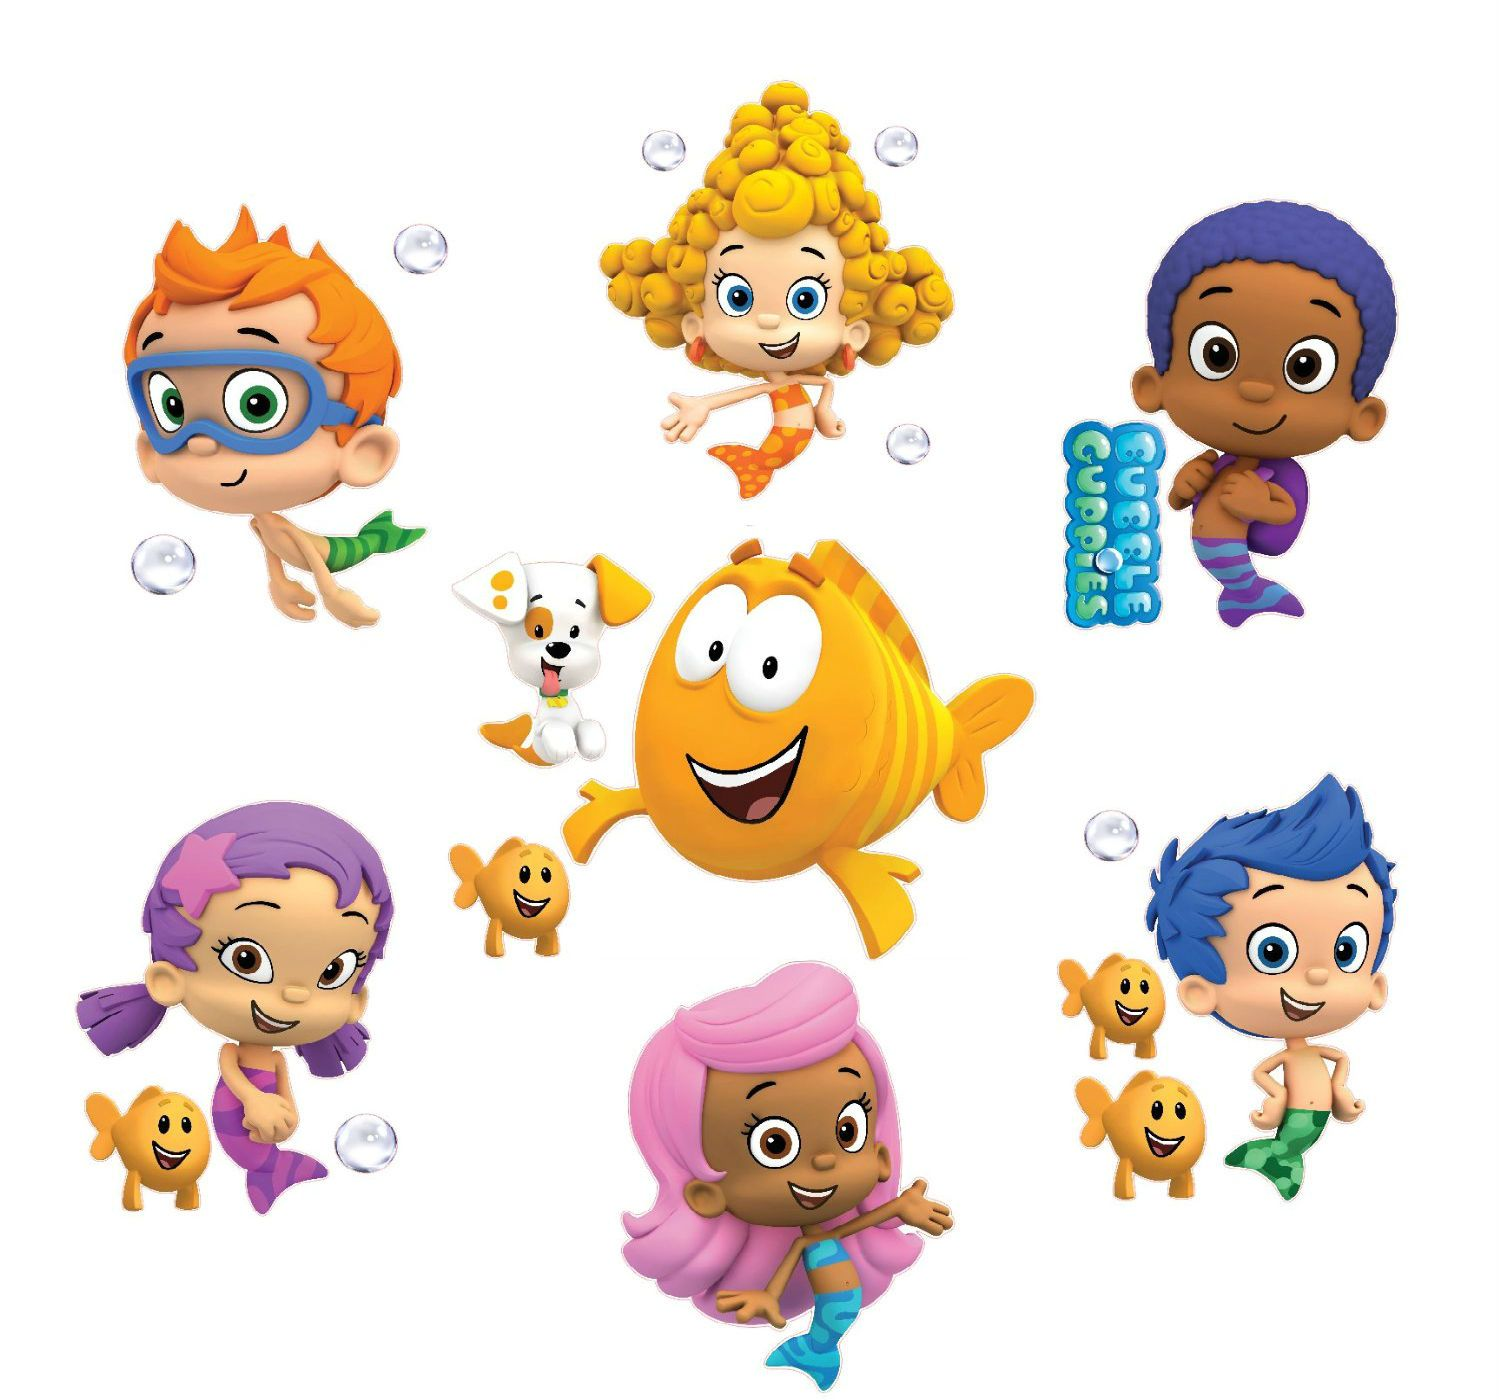 Bubble Guppies Tw Hd Wallpapers 1080p 47557 The Hd Wallpaper Bubble Guppies Birthday Bubble Guppies Party Bubble Guppies Theme